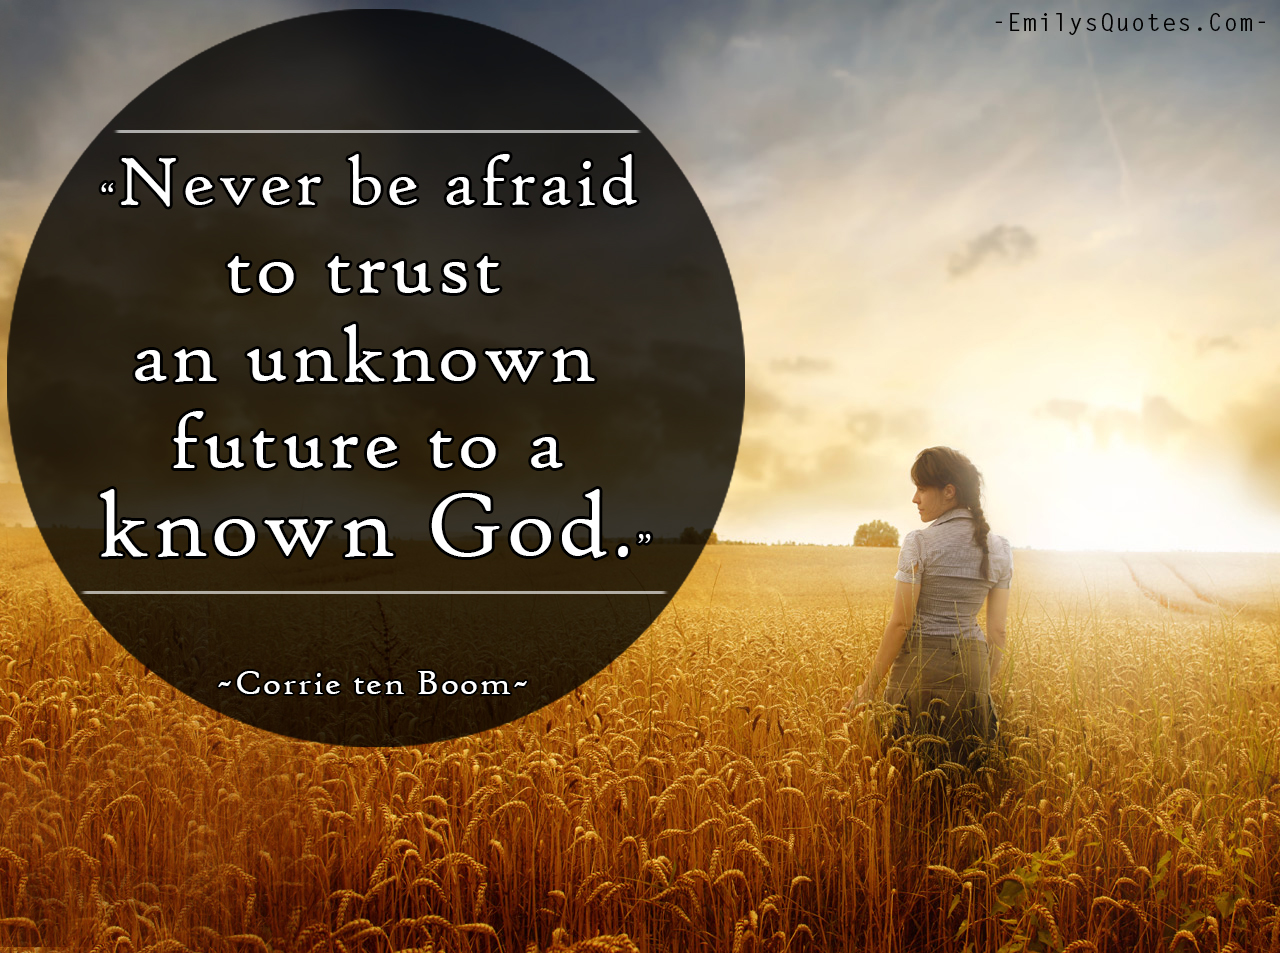 Never be afraid to trust an unknown future to a known God ...